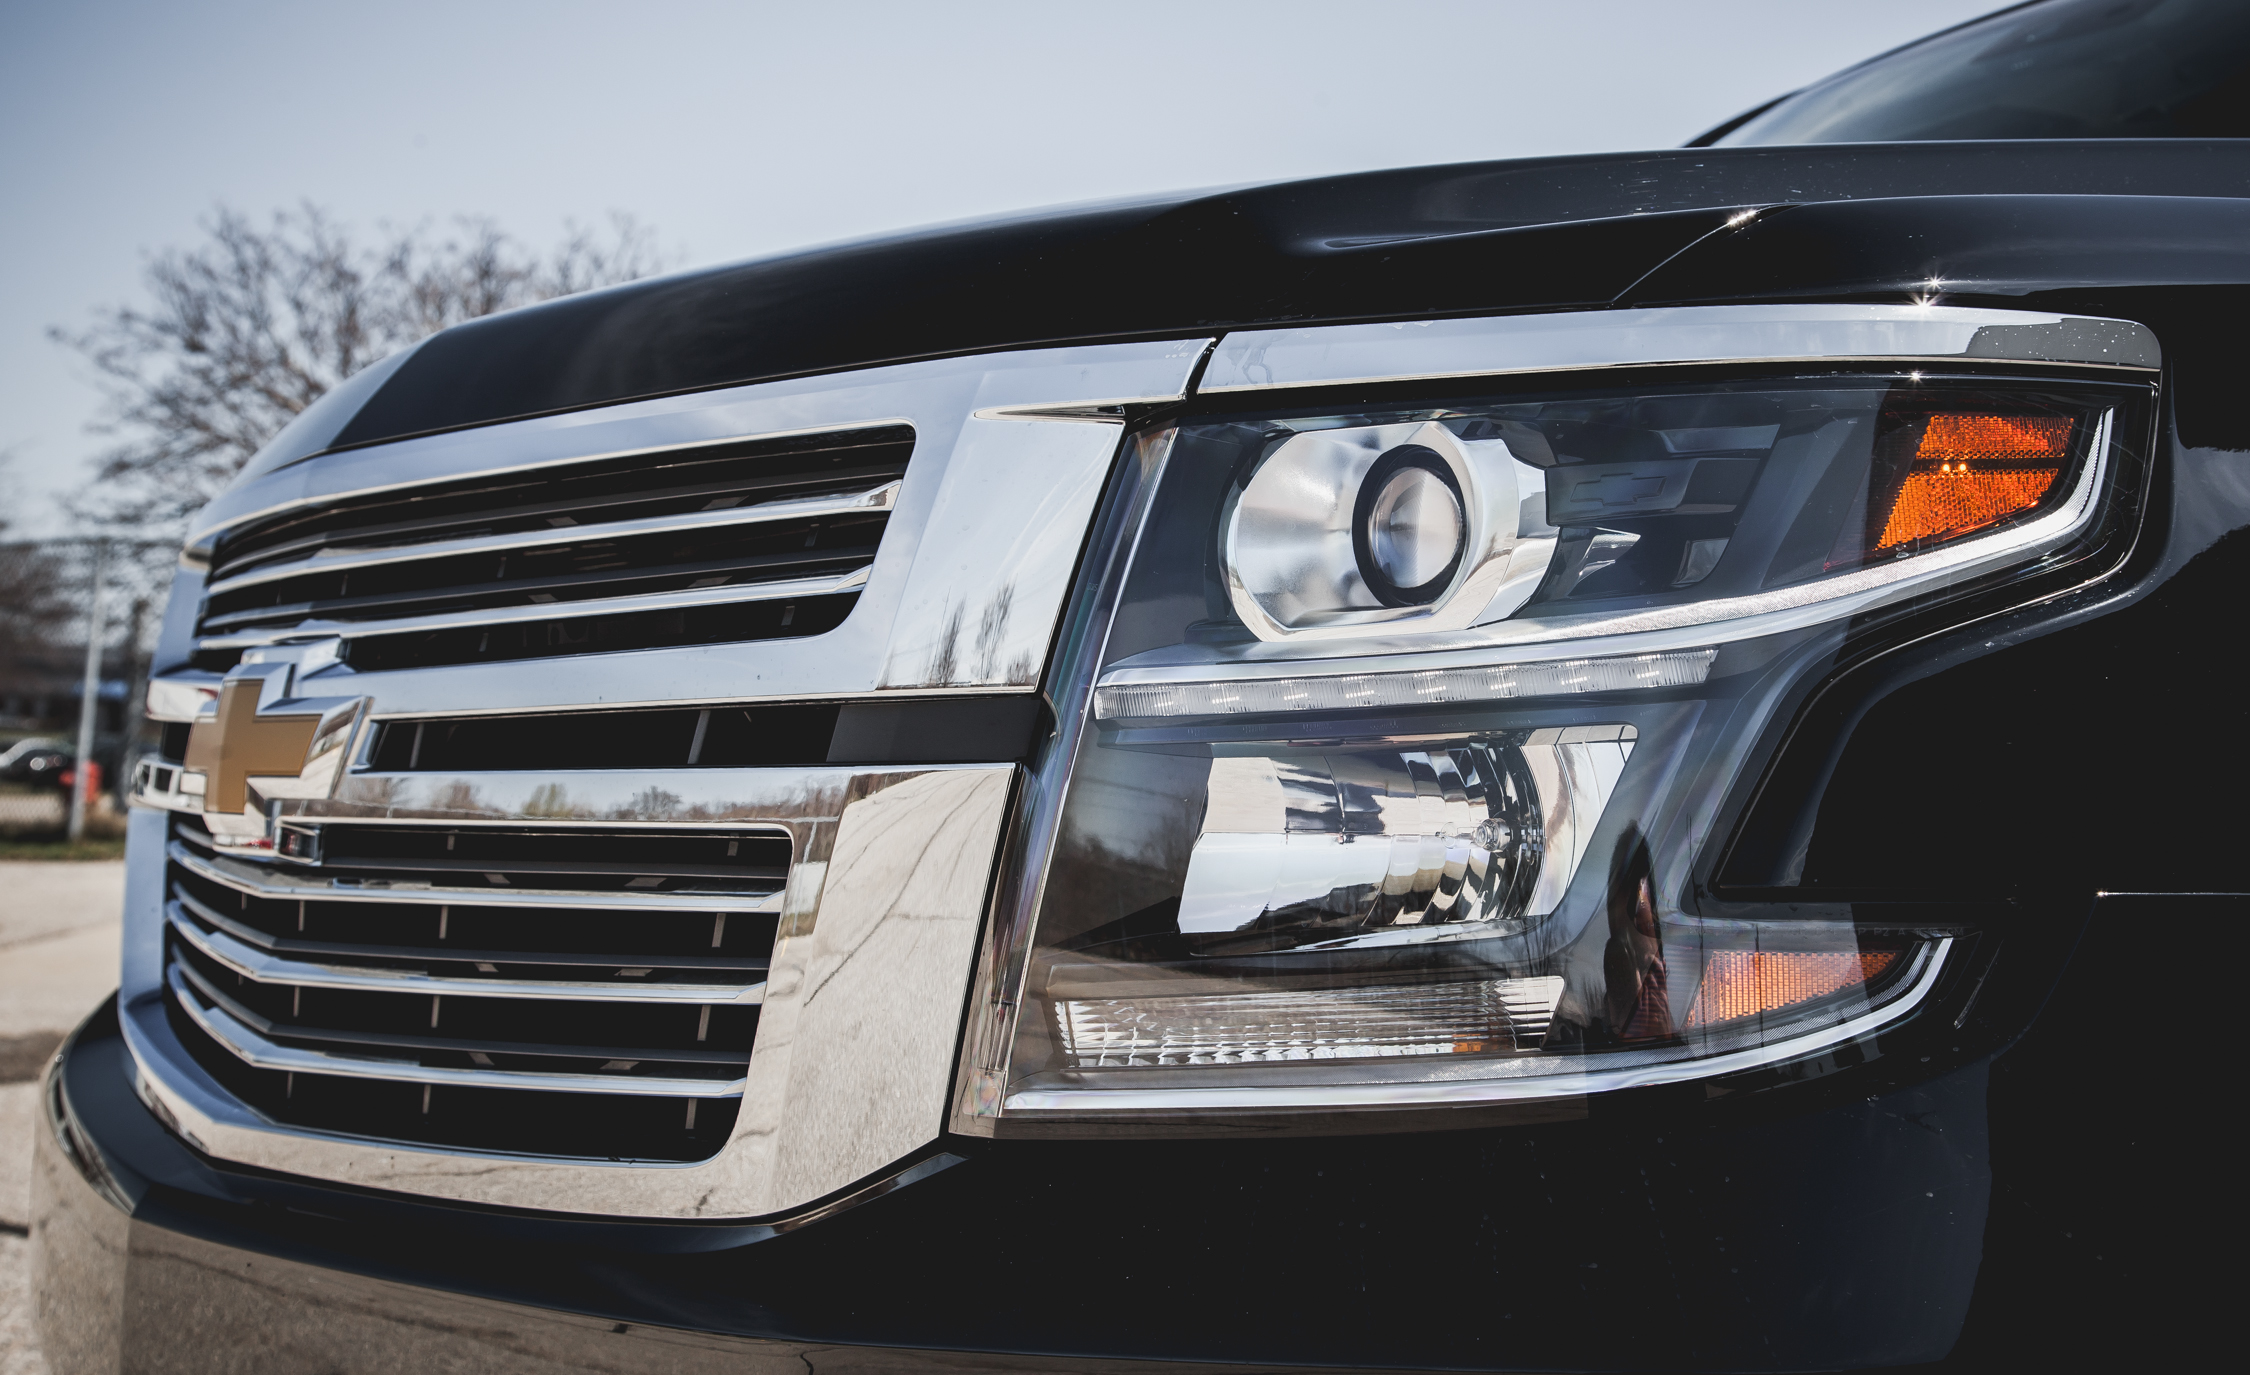 2015 Chevrolet Suburban LTZ Grille, Badge, And Headlight (Photo 14 of 33)